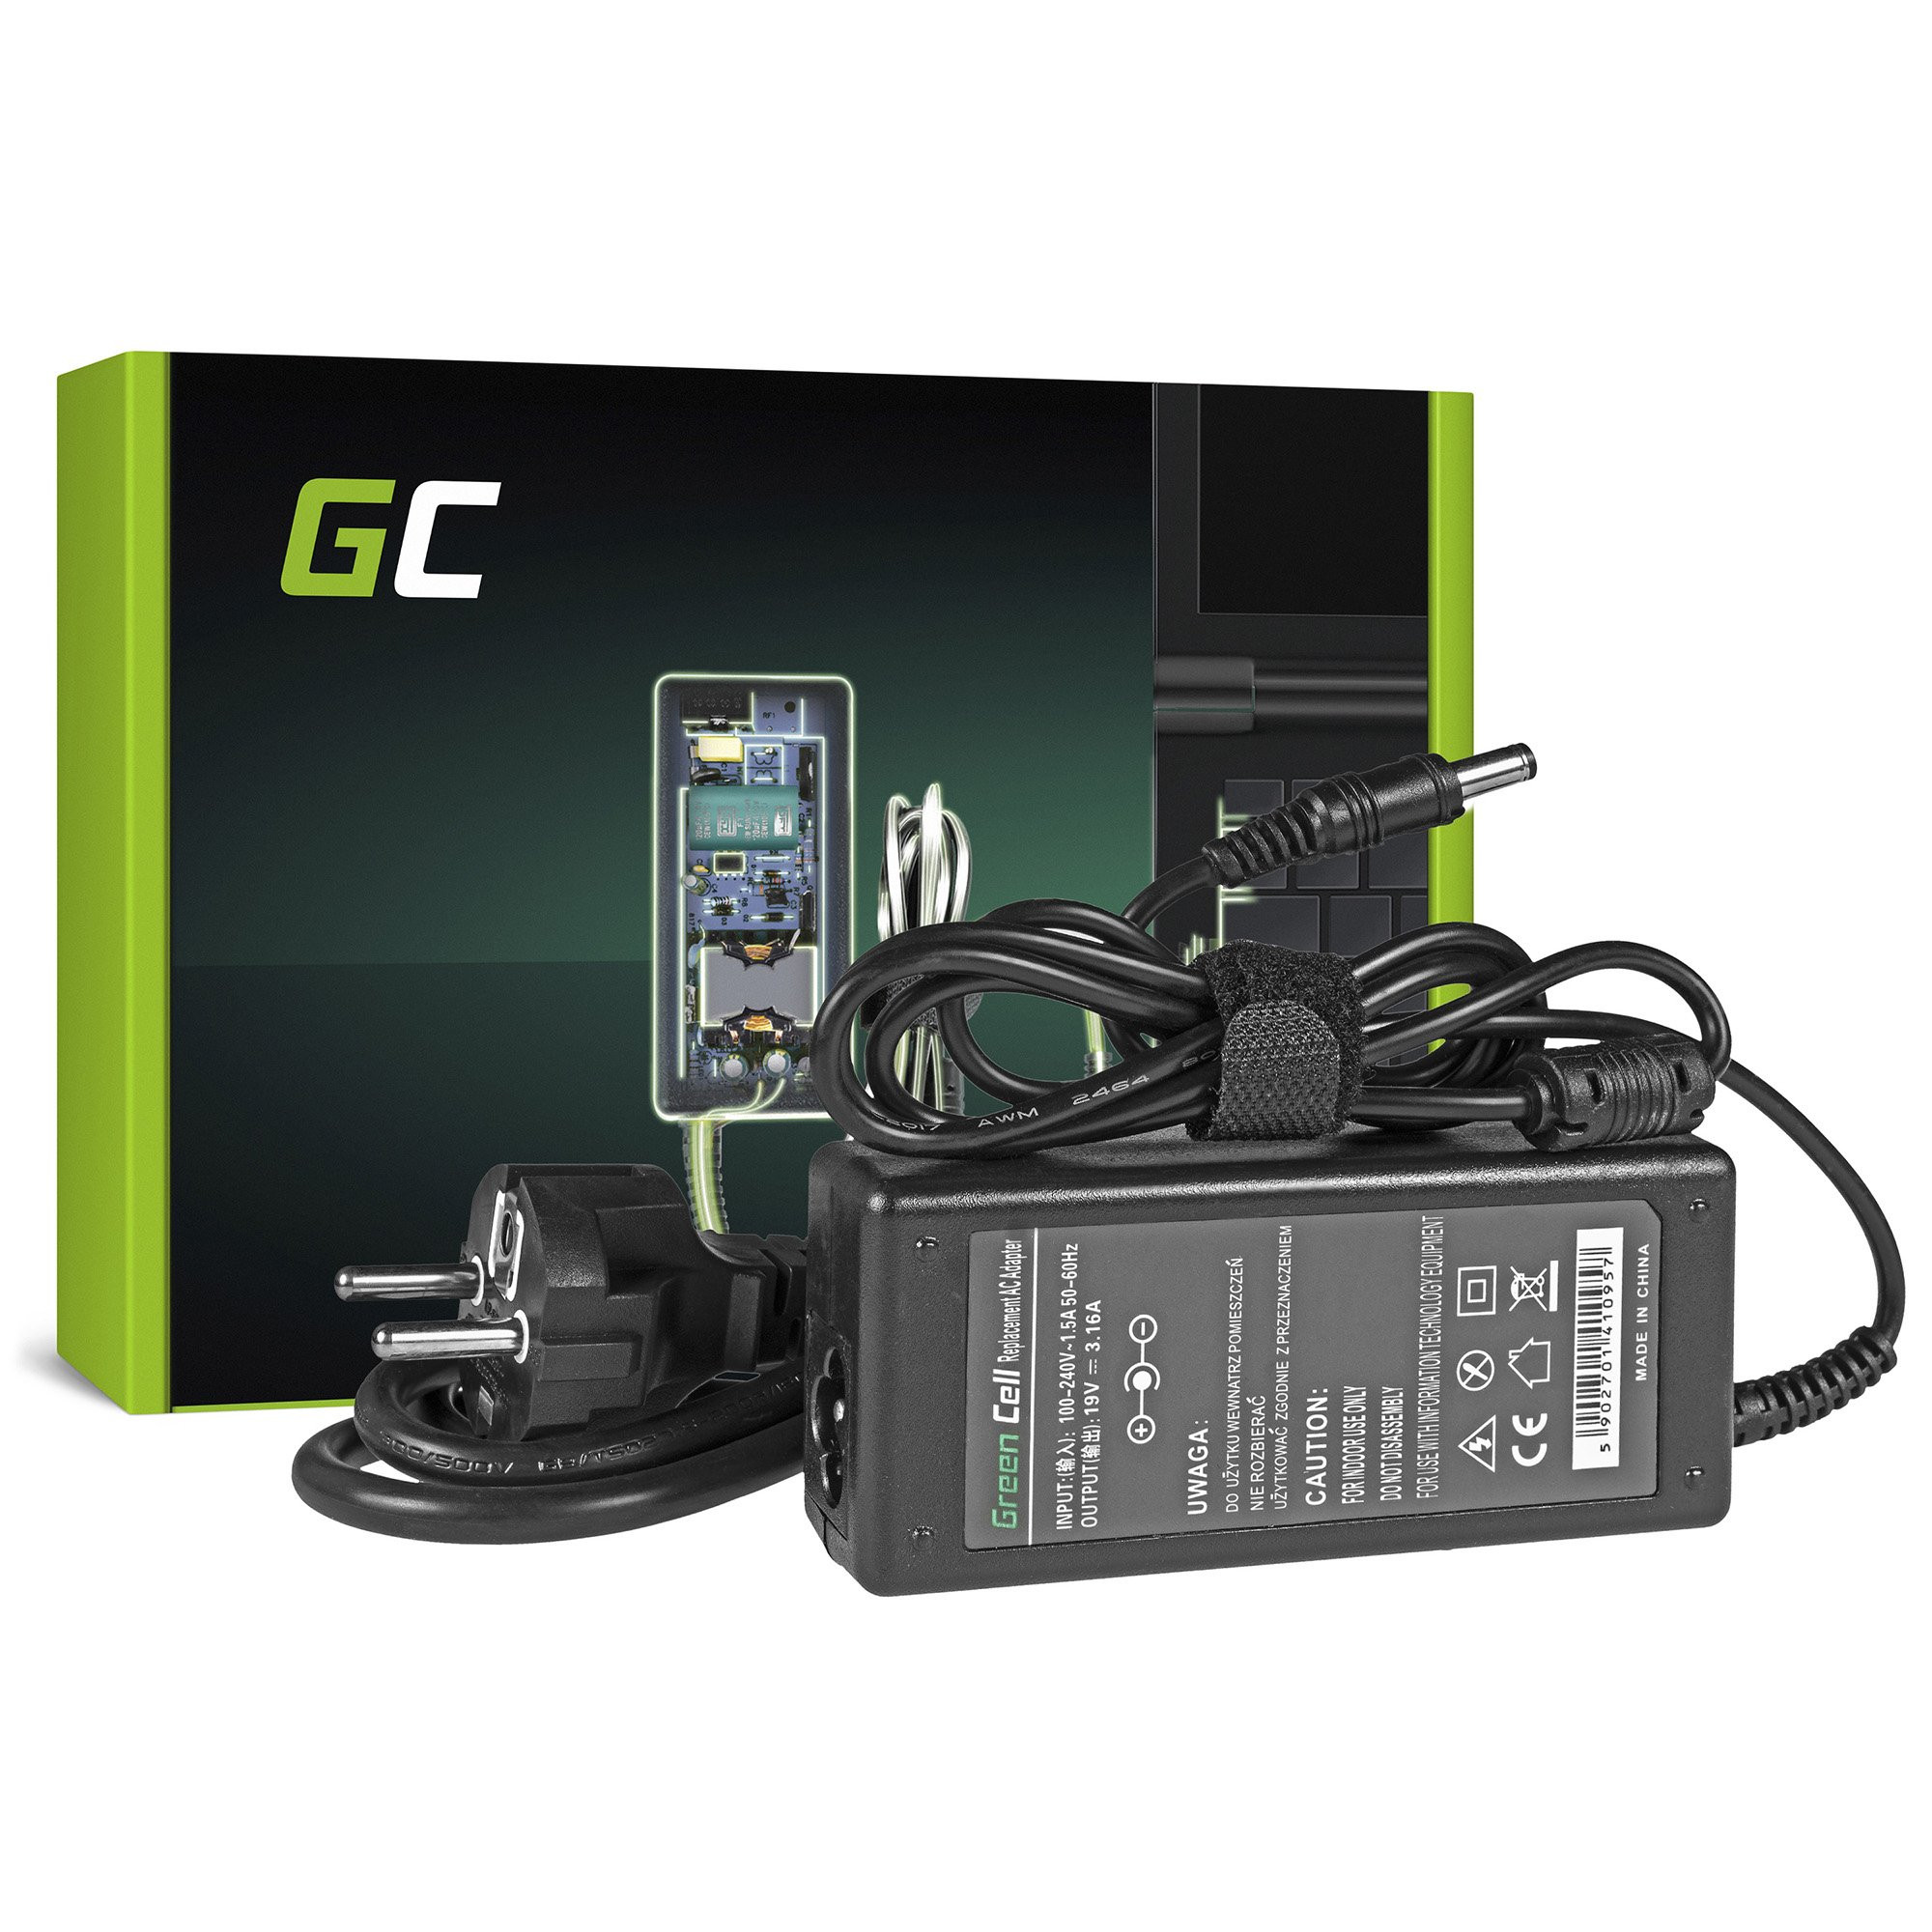 Green Cell Charger  AC Adapter for Toshiba 60W / 19V 3.16A / 5.5mm-2.5mm